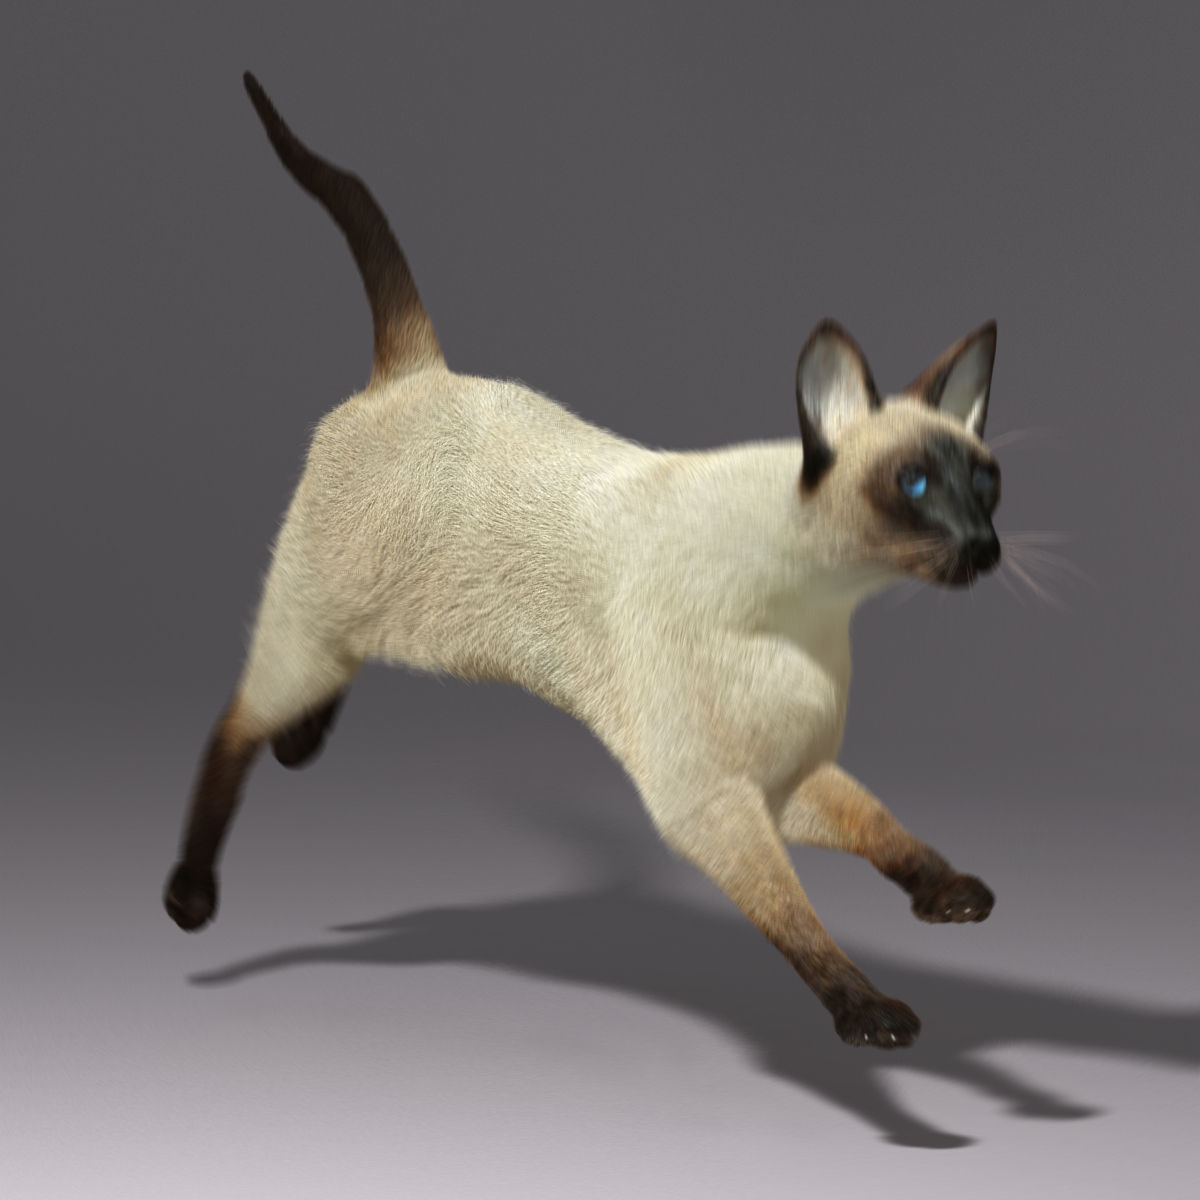 siamese cat 3d model - photo #46